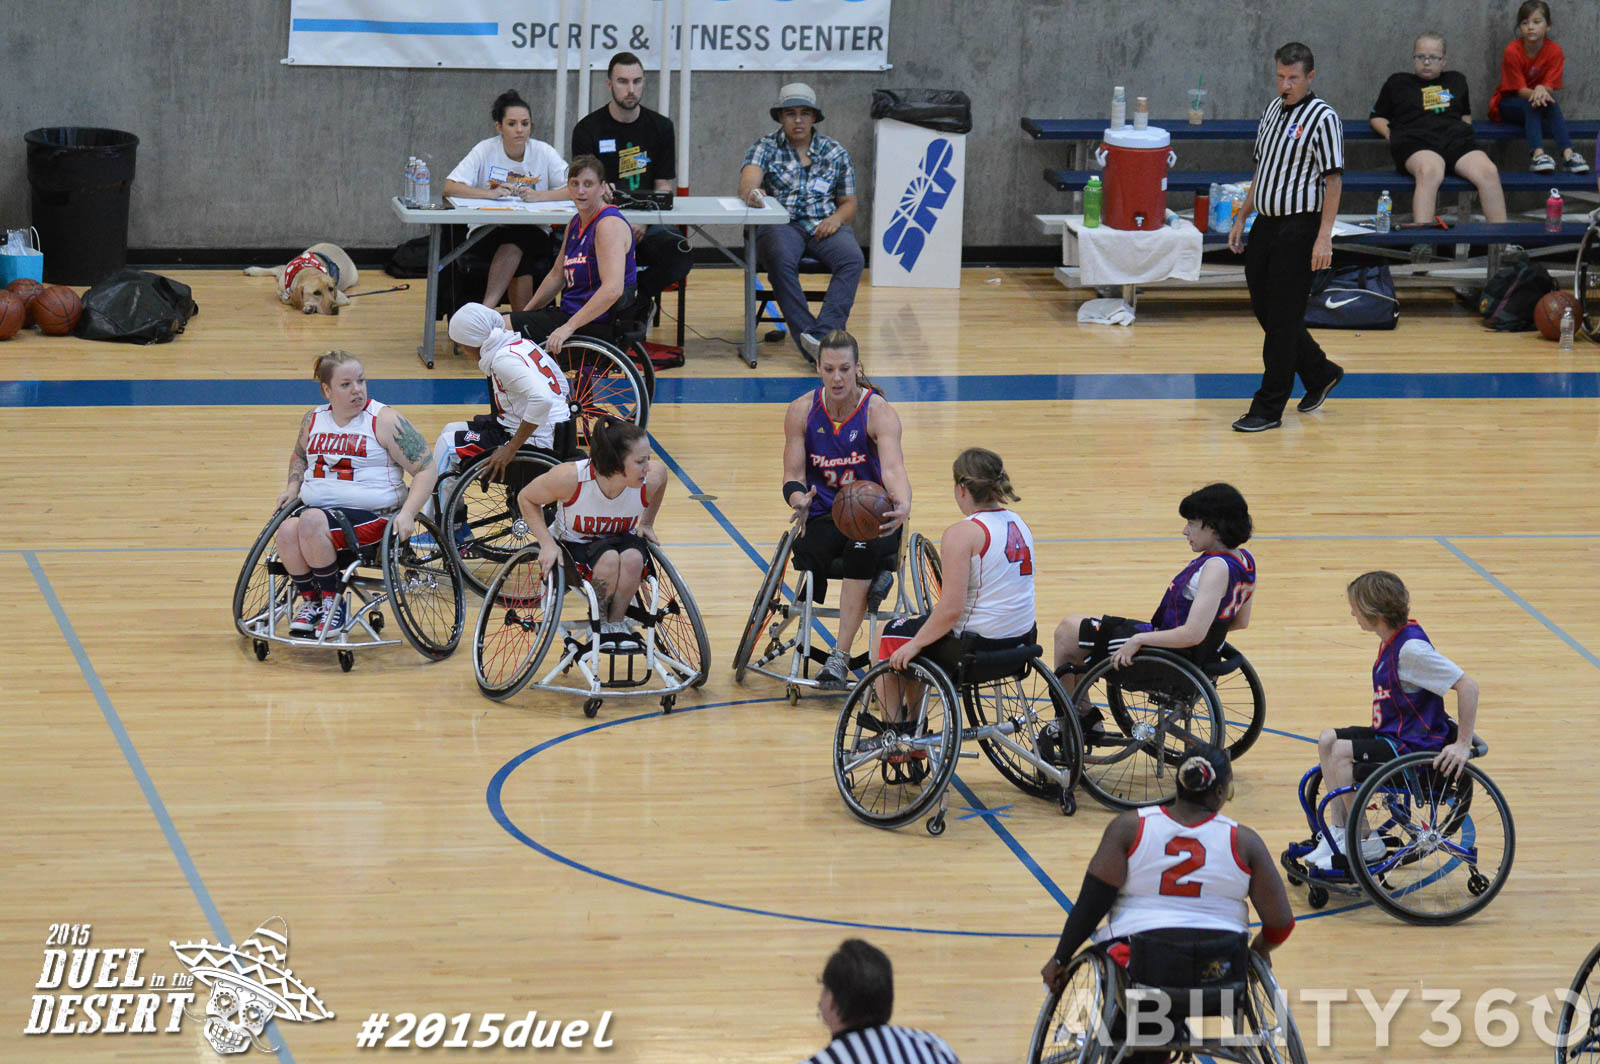 wide shot of court and eight women's team players.  scorekeeper's table in background. Phoenix Mercury wheelchair basketball team . take on Tucson women's team